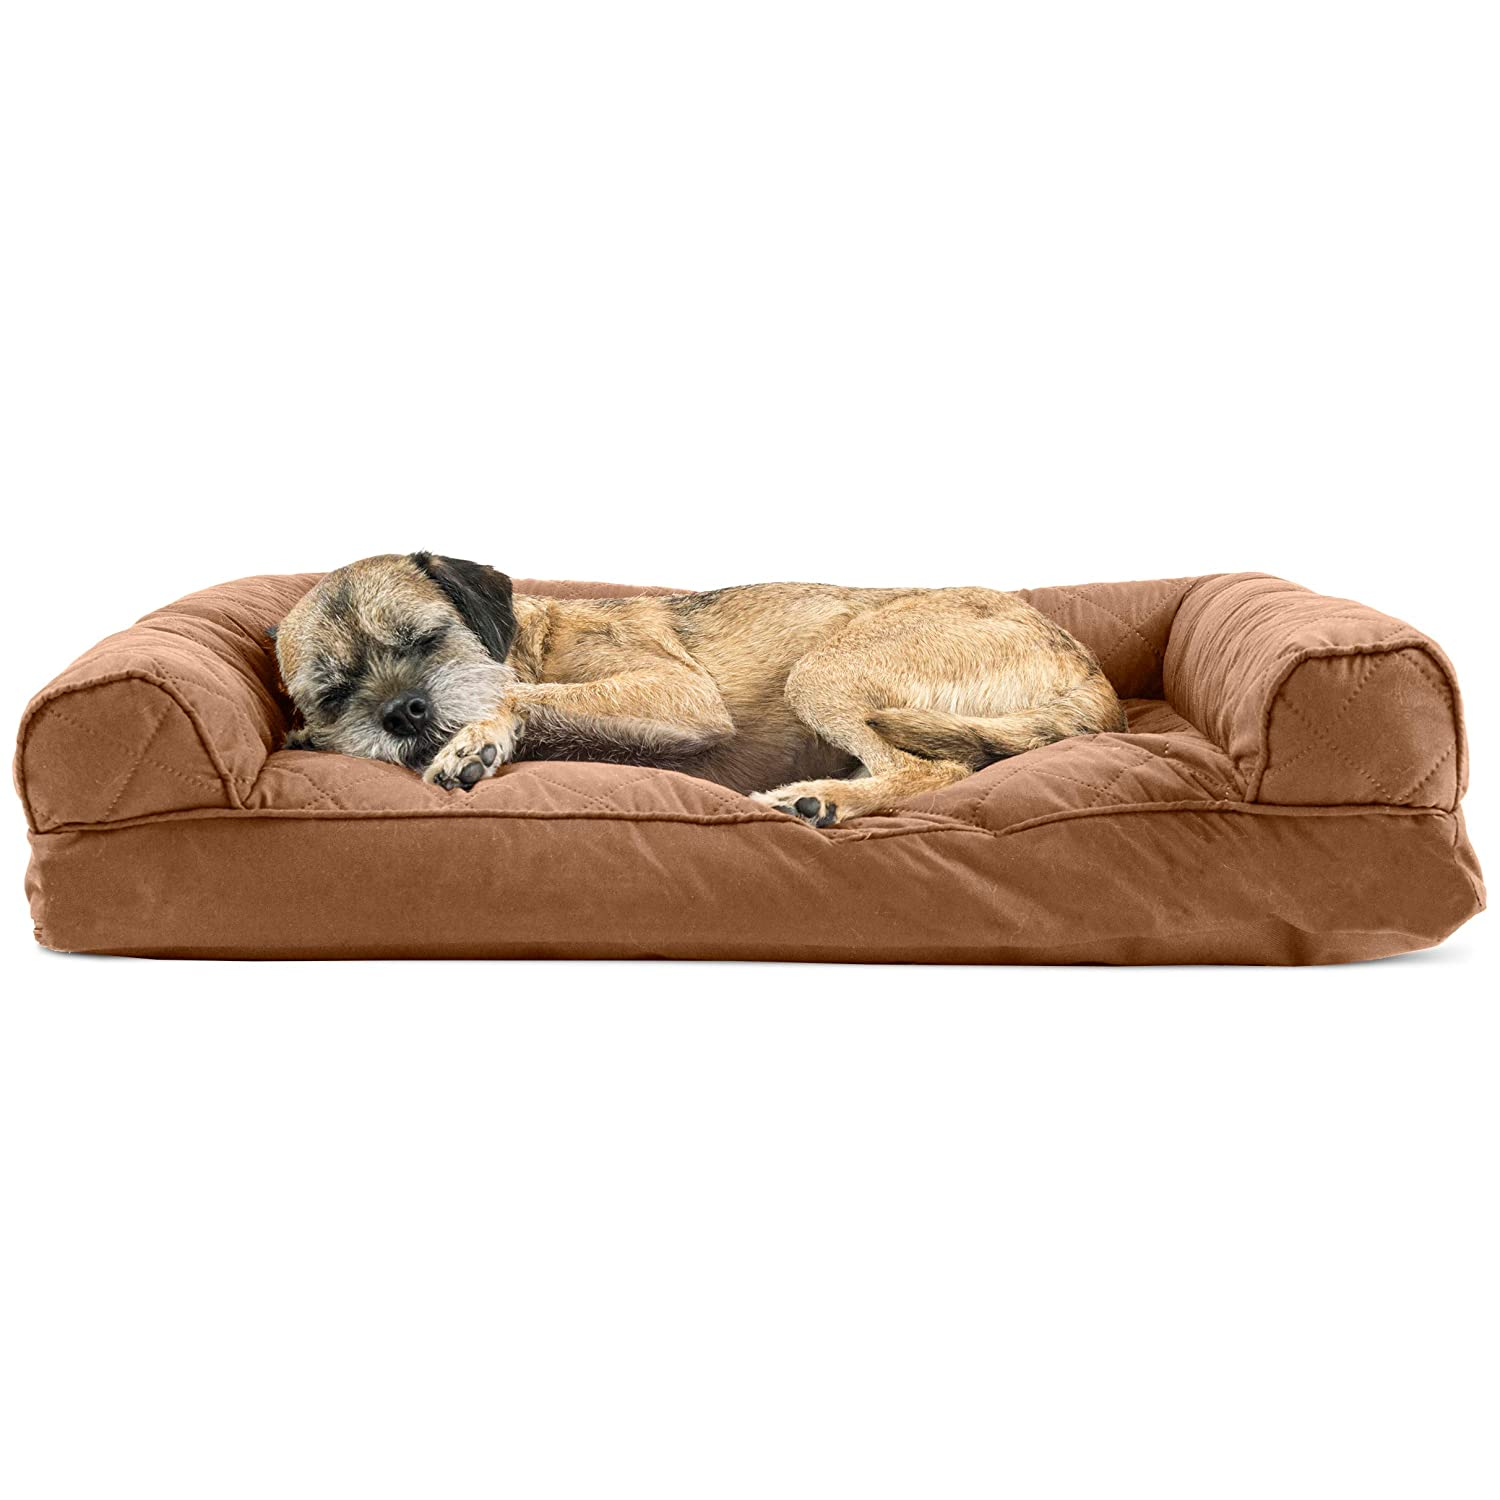 Peachy Furhaven Pet Dog Bed Quilted Pillow Cushion Traditional Sofa Style Living Room Couch Pet Bed W Removable Cover For Dogs Cats Toasted Brown Ncnpc Chair Design For Home Ncnpcorg